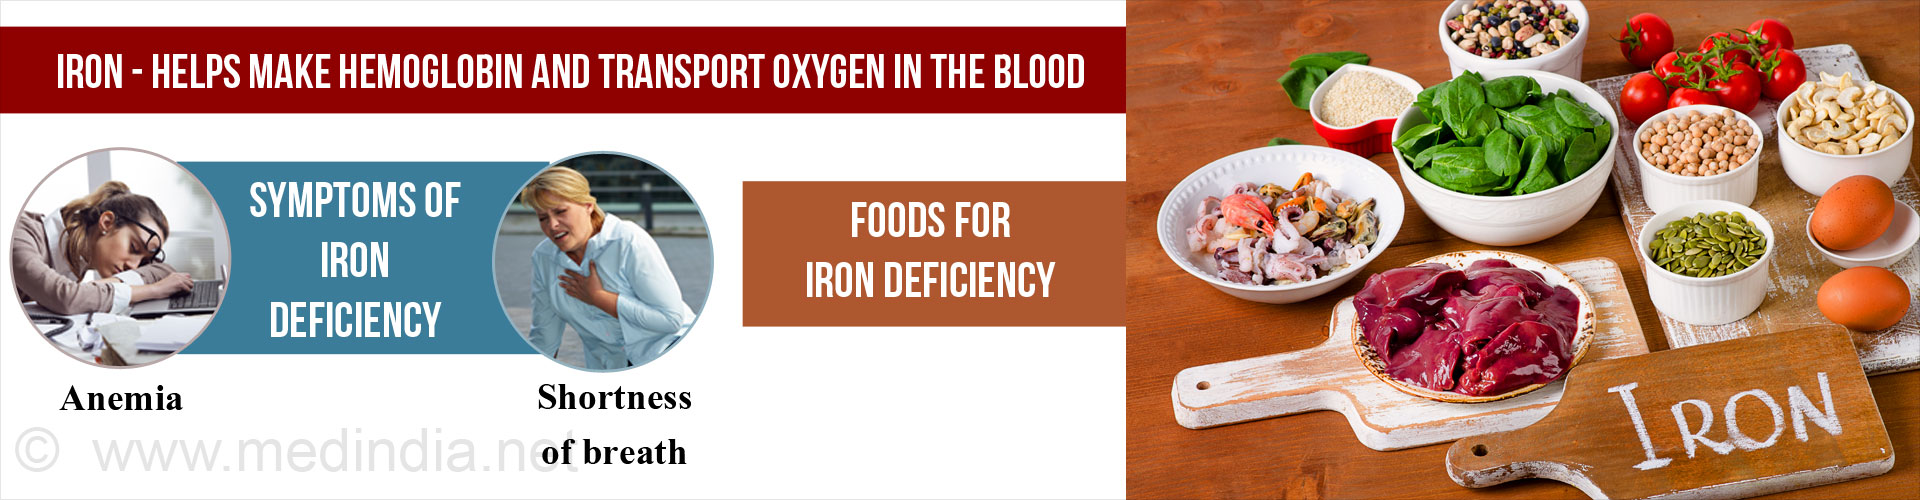 Iron helps make hemoglobin and transports oxygen in the blood